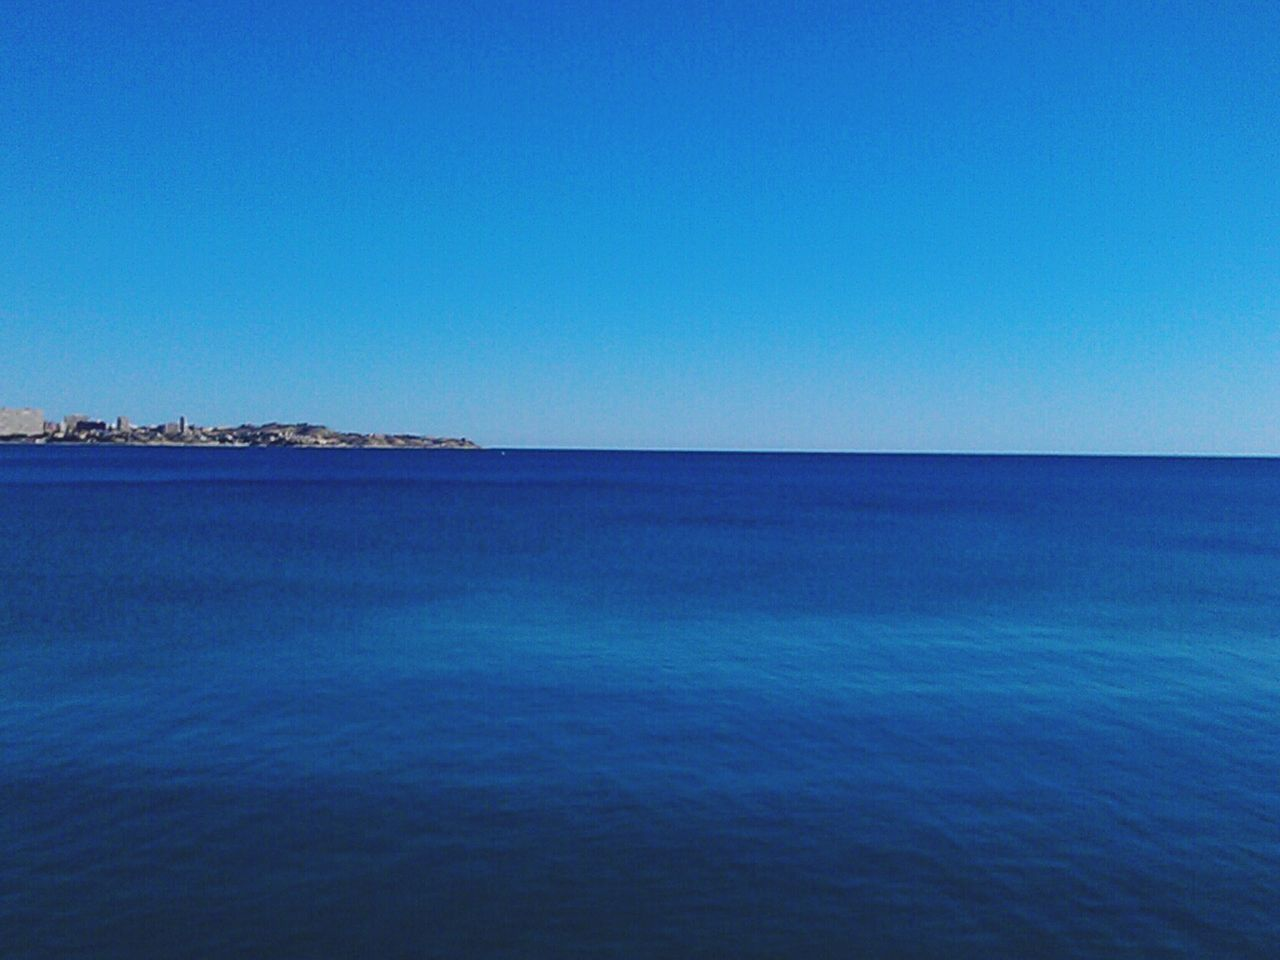 Tranquil View Of Seascape Against Clear Blue Sky